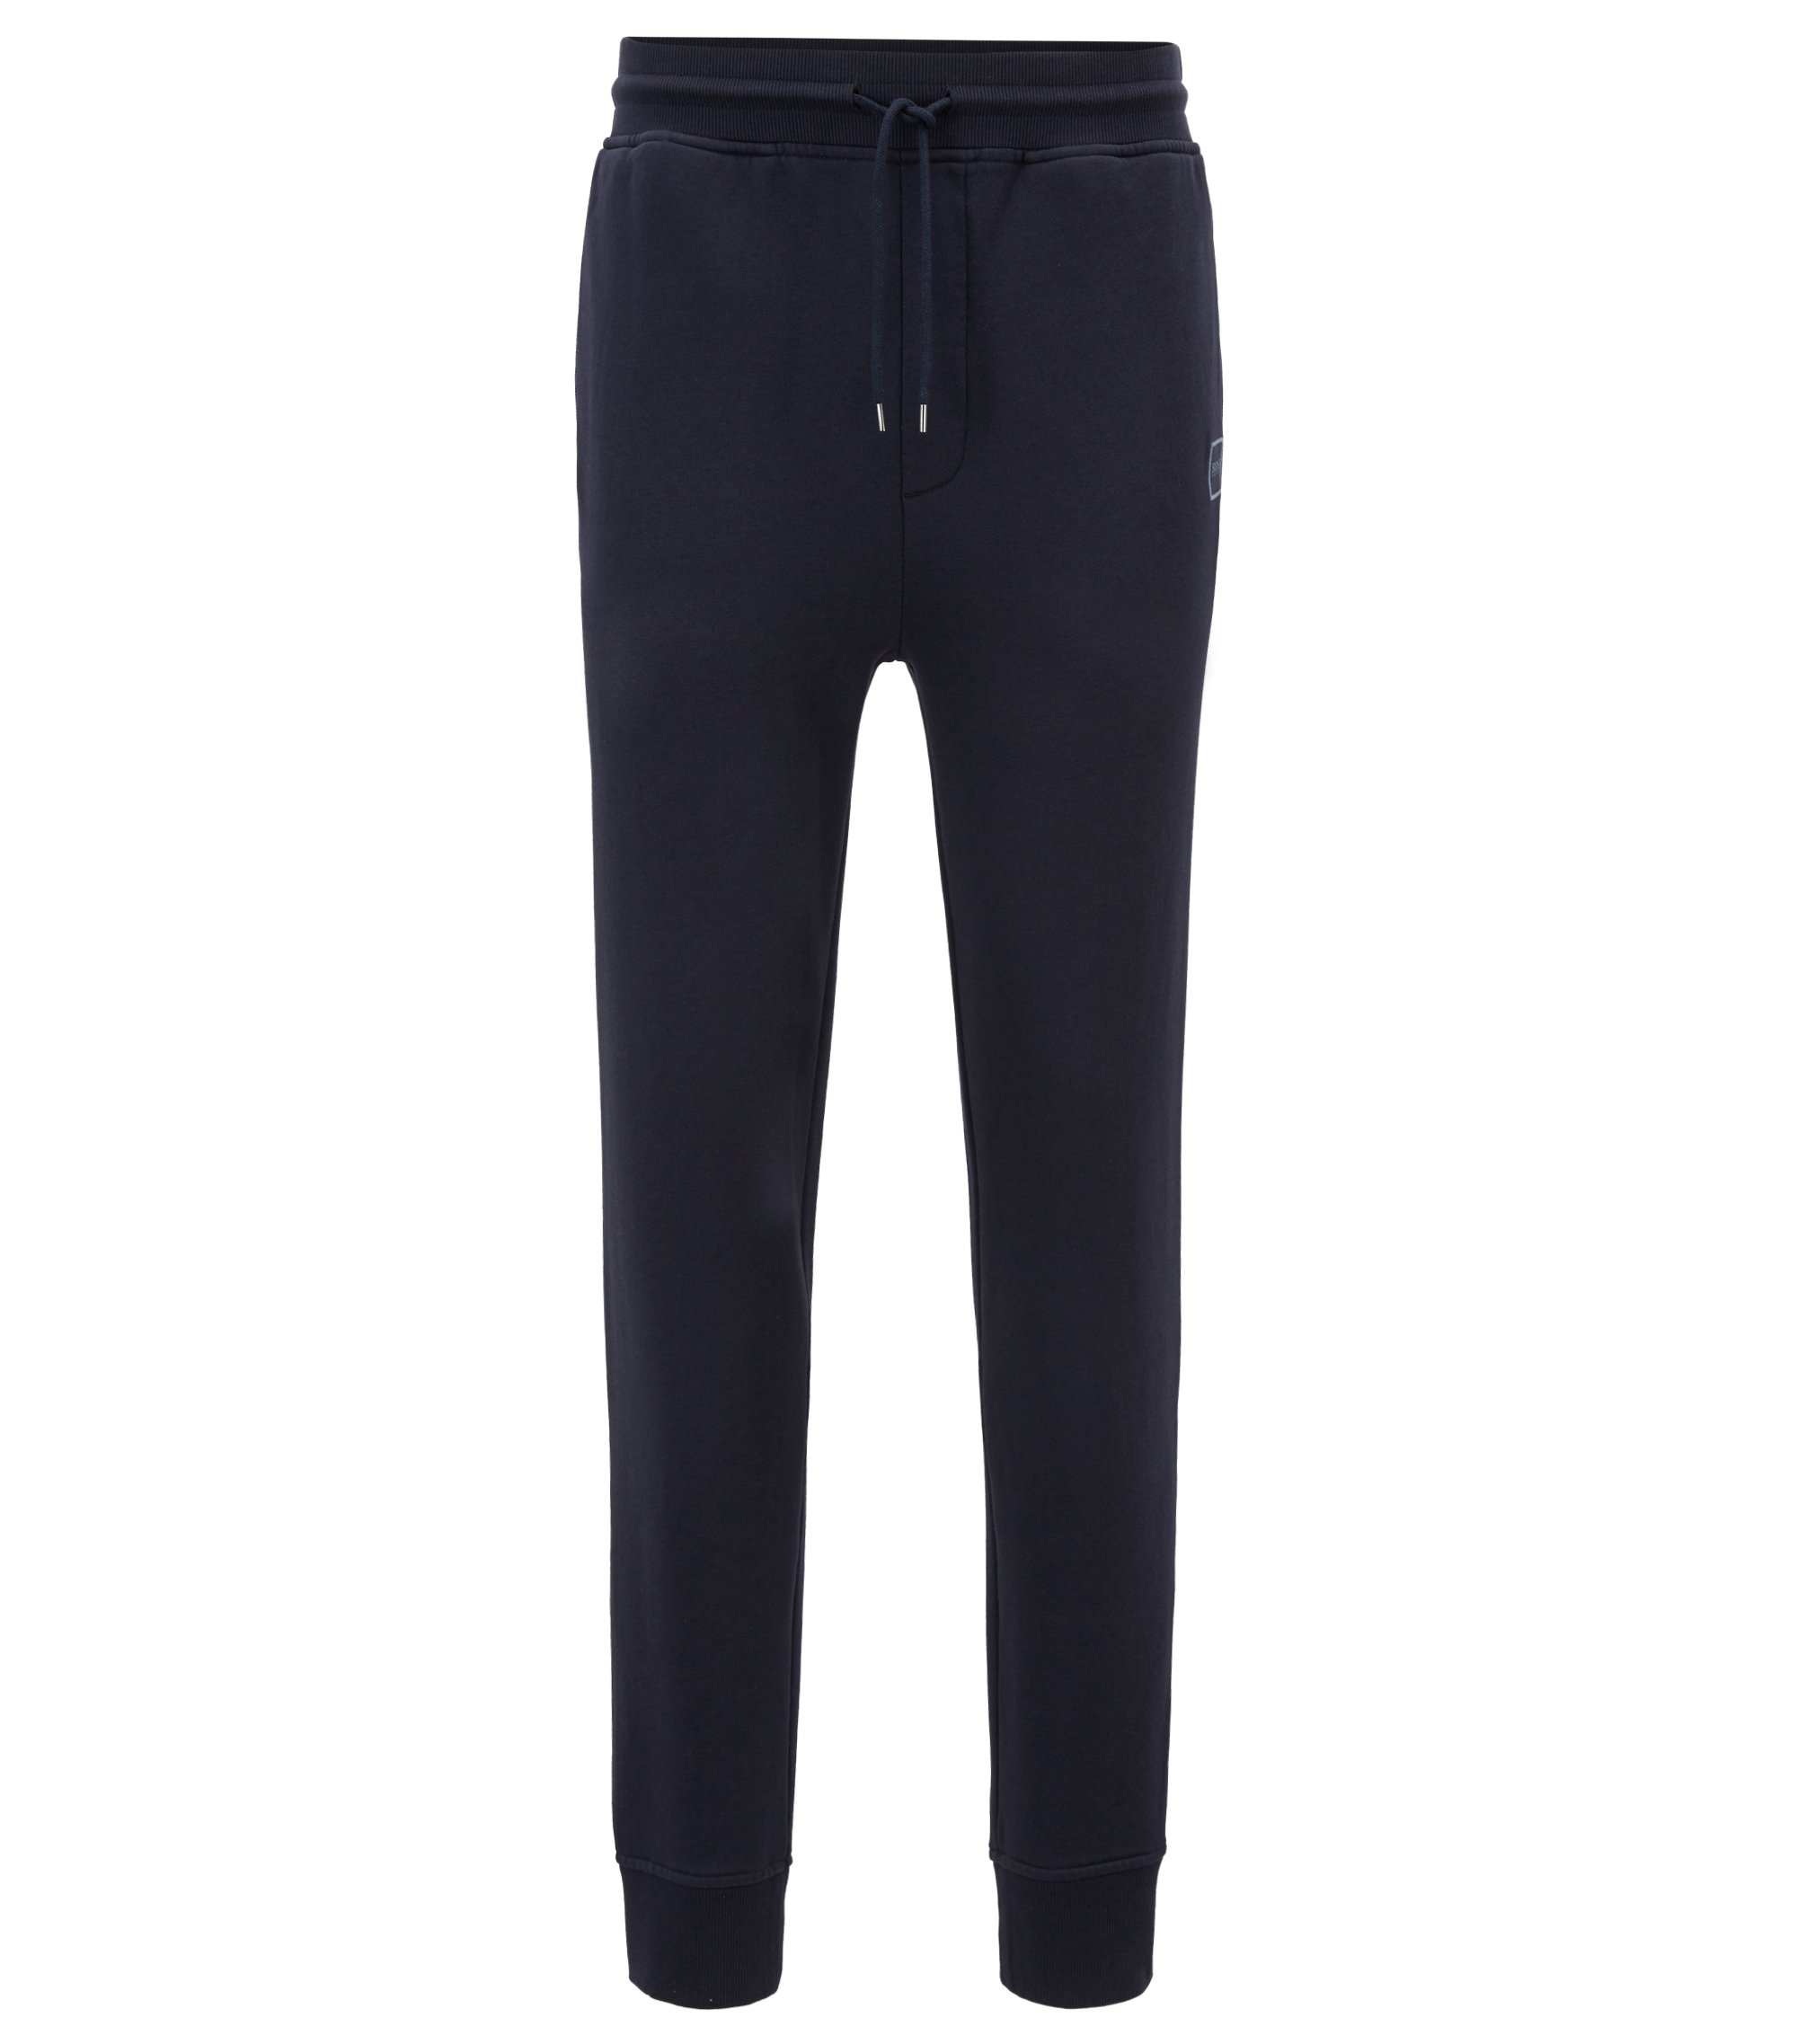 Cuffed jogging bottoms in French terry with woven logo, Dark Blue